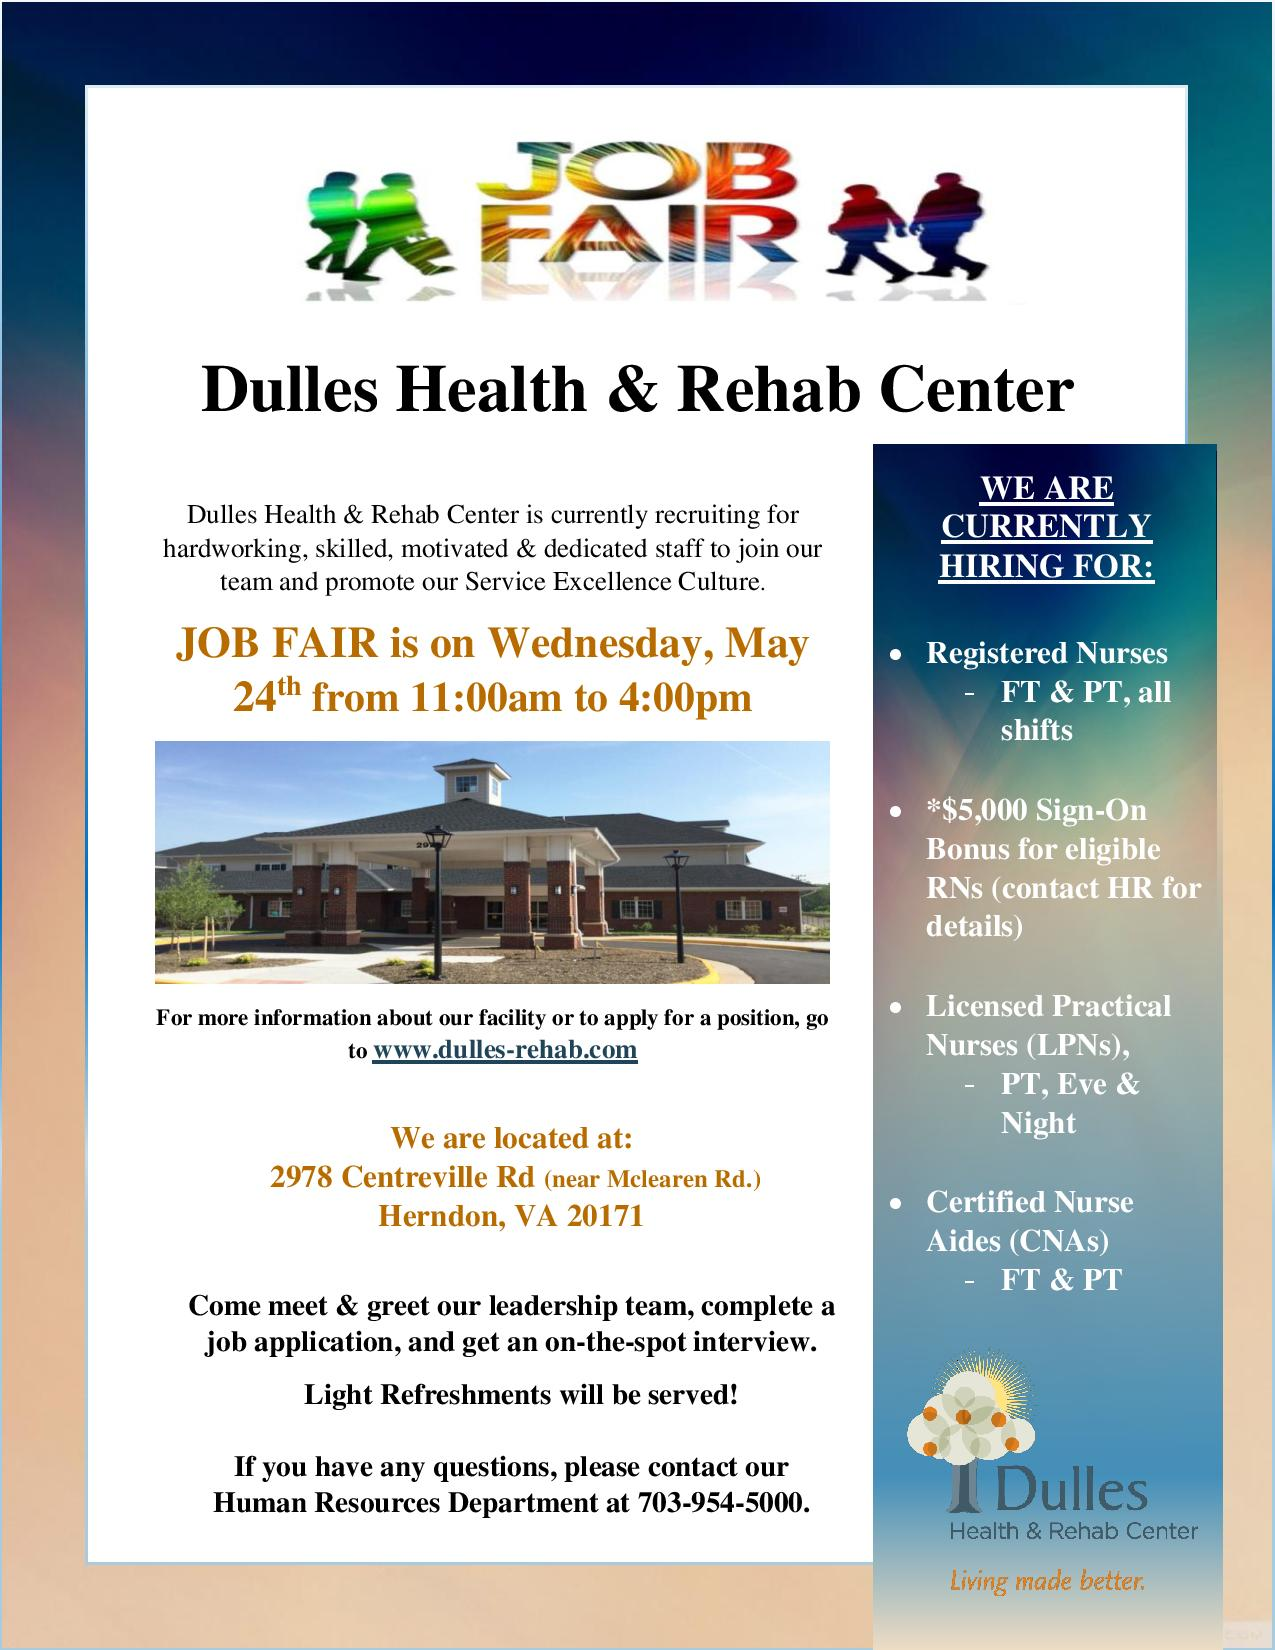 Dulles health rehab center job fair may 24th 2017 questions contact human resources at 7039345000 apply for one of our positions on our jobs page xflitez Image collections